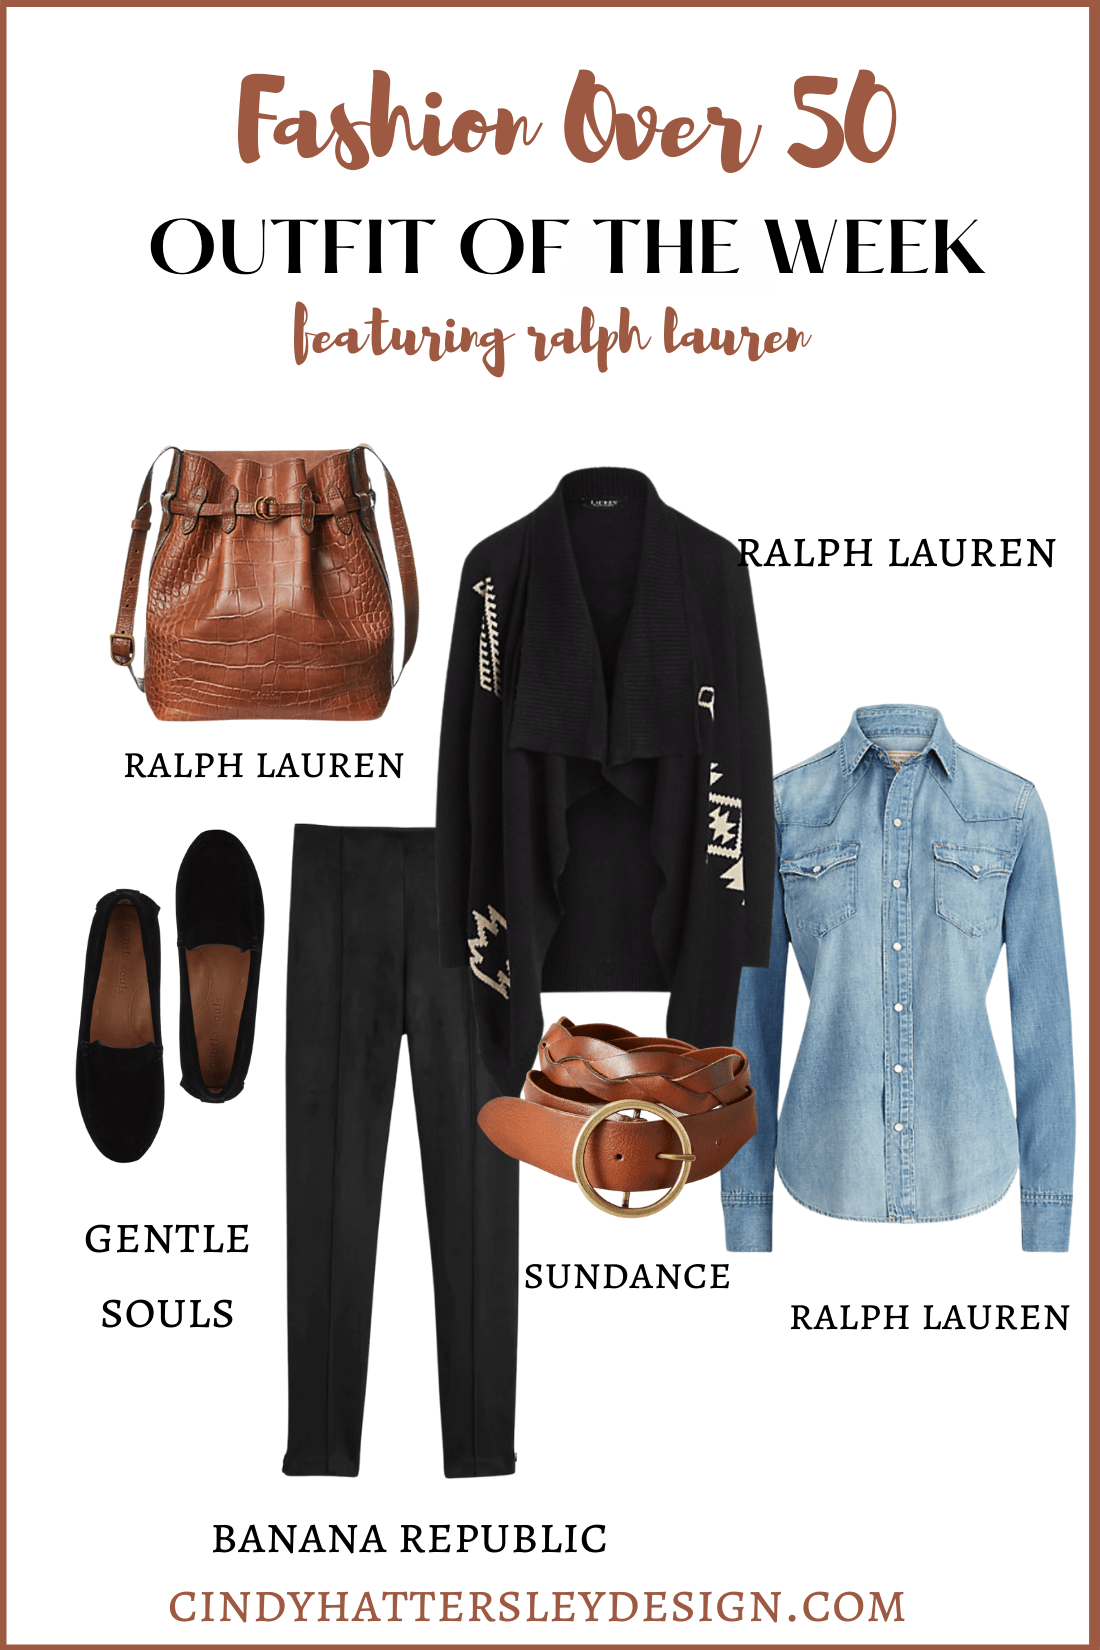 ralph lauren outfit of the week